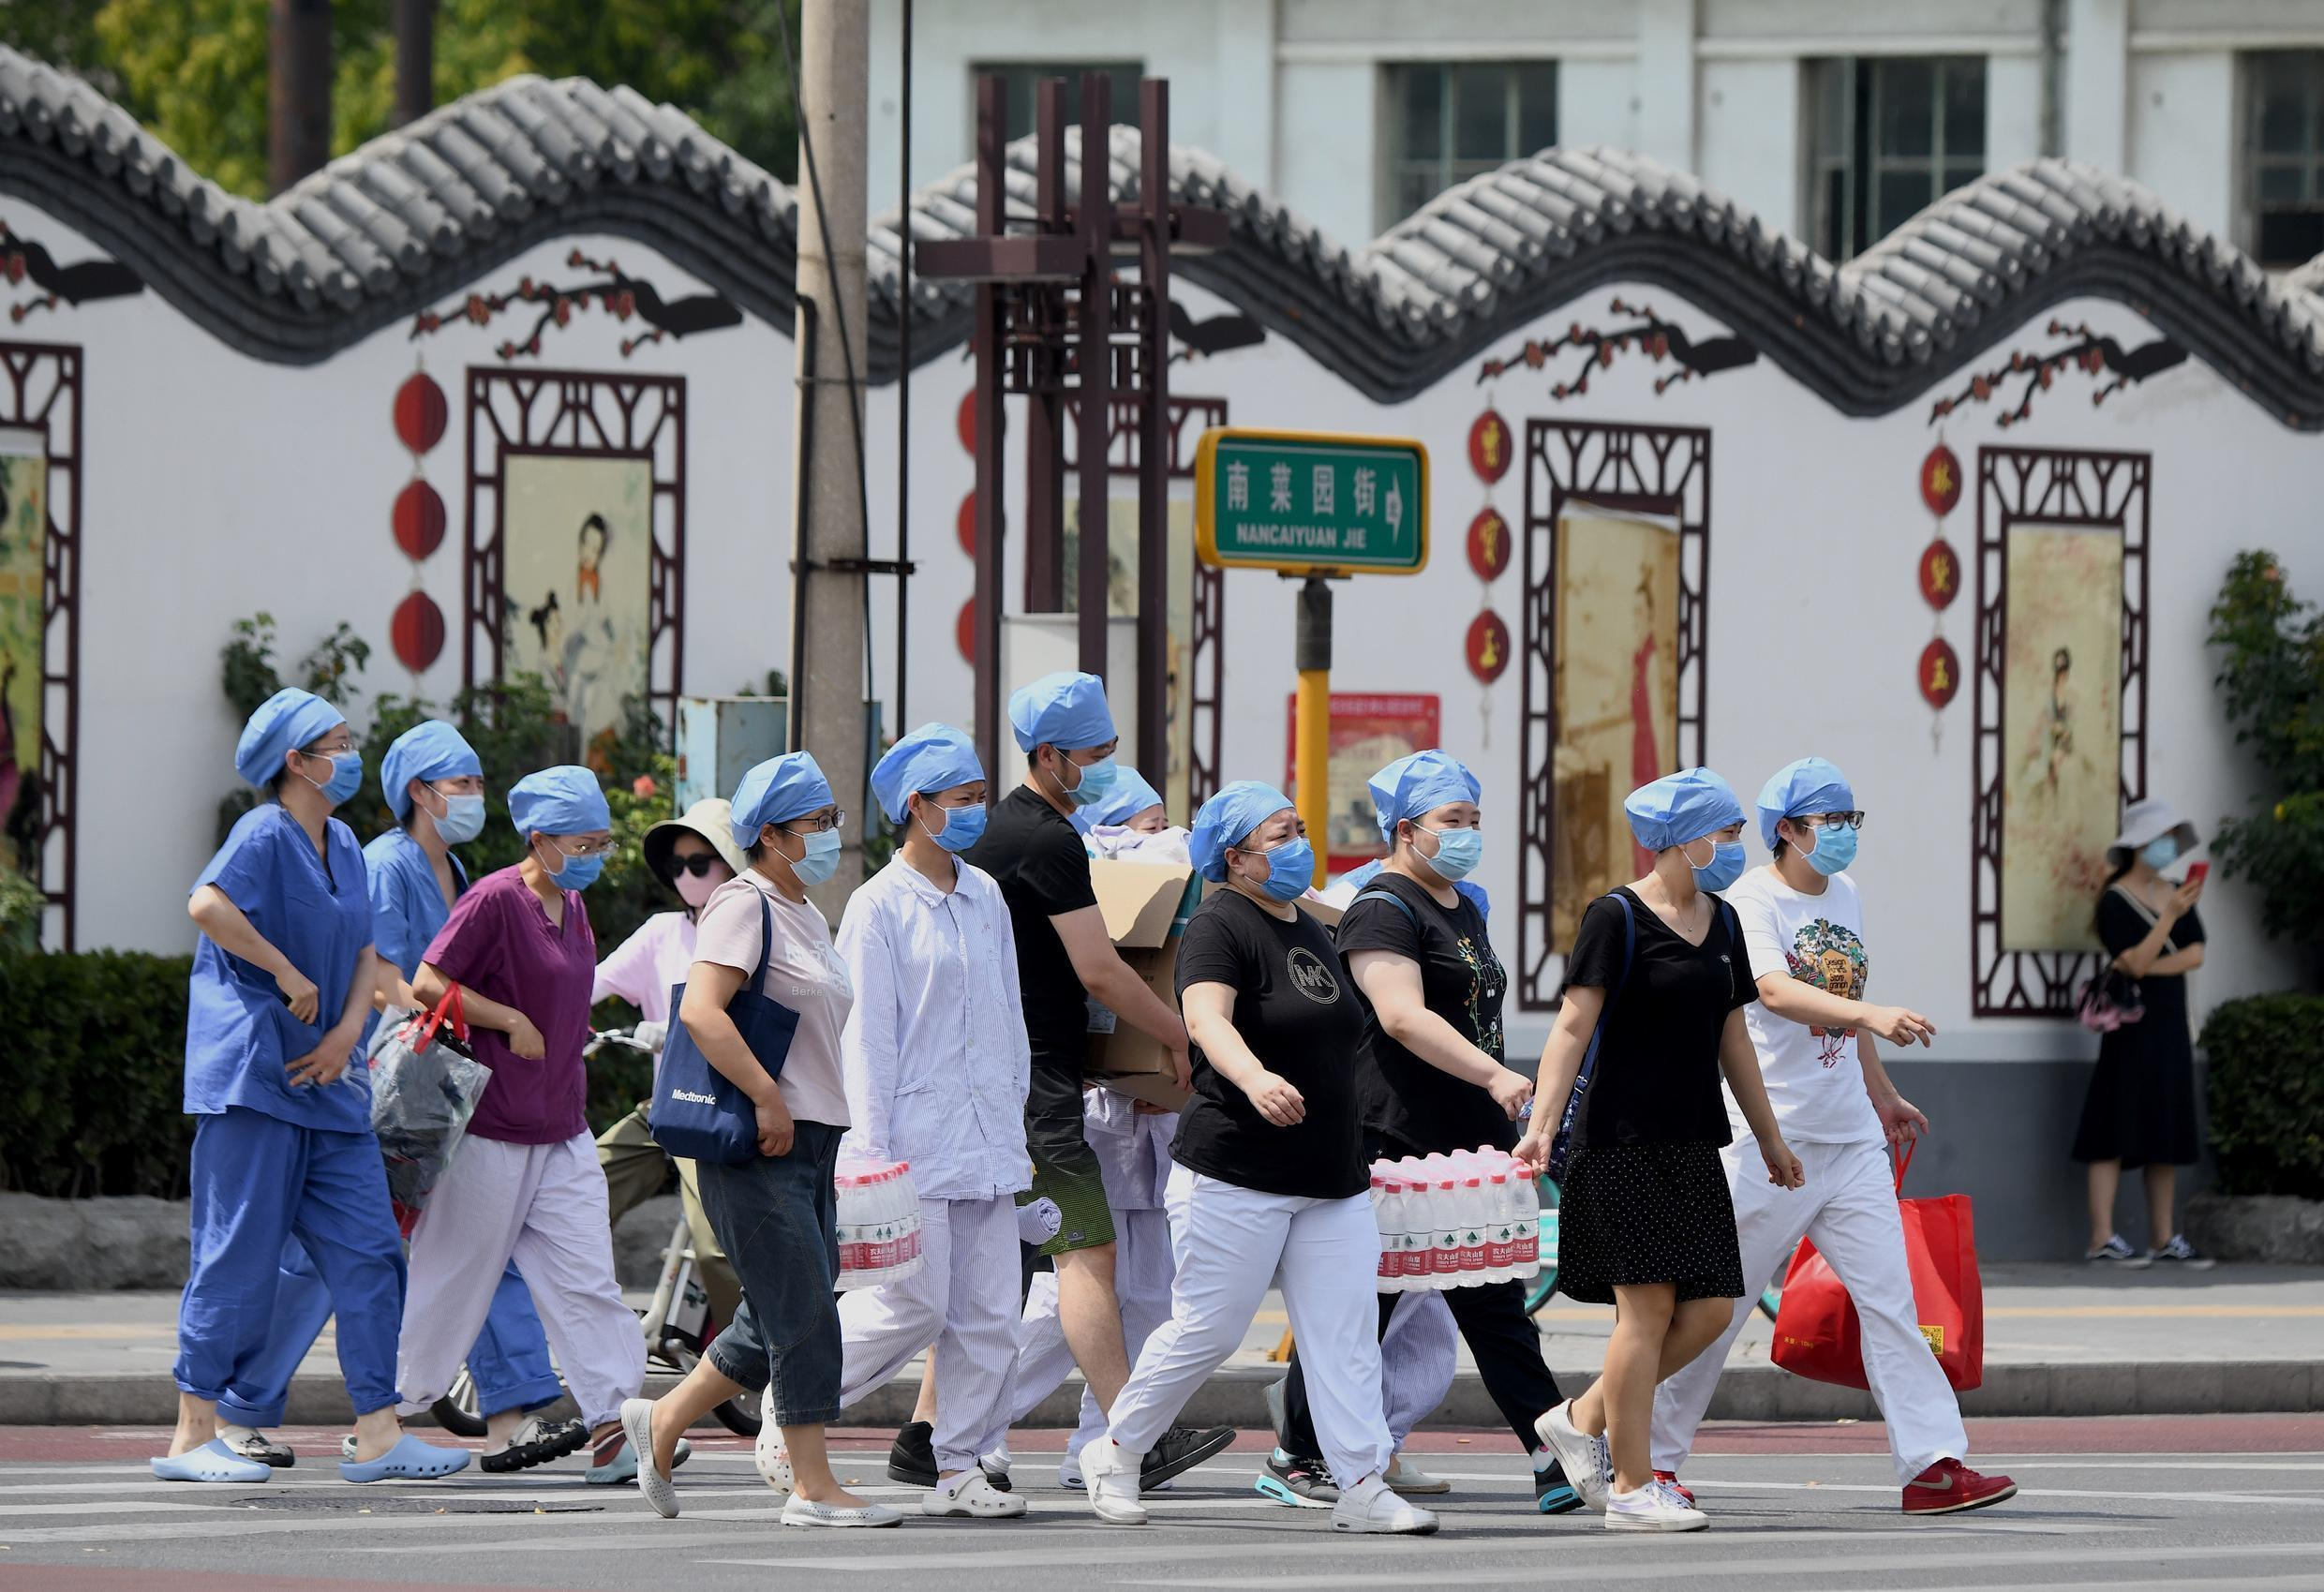 Authorities in the Chinese capital Beijing are rushing to contain a new outbreak of the coronavirus linked to a wholesale food market